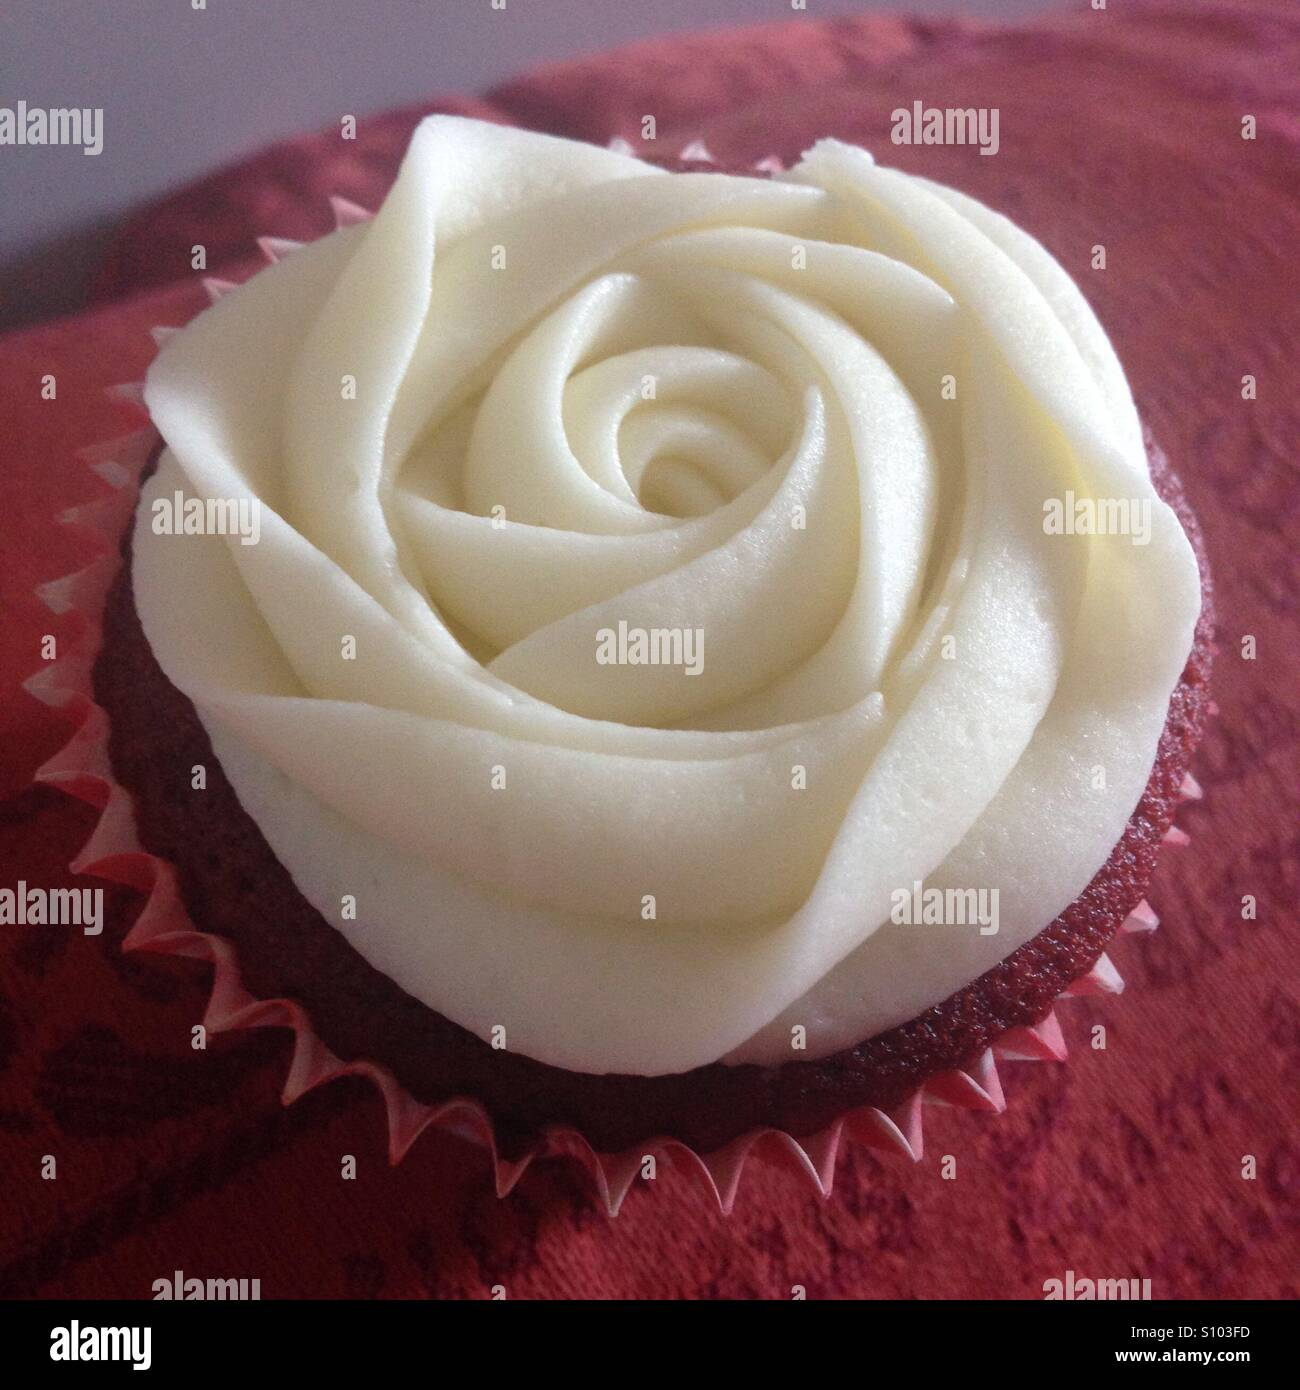 Red velvet cupcake with white rose icing - Stock Image